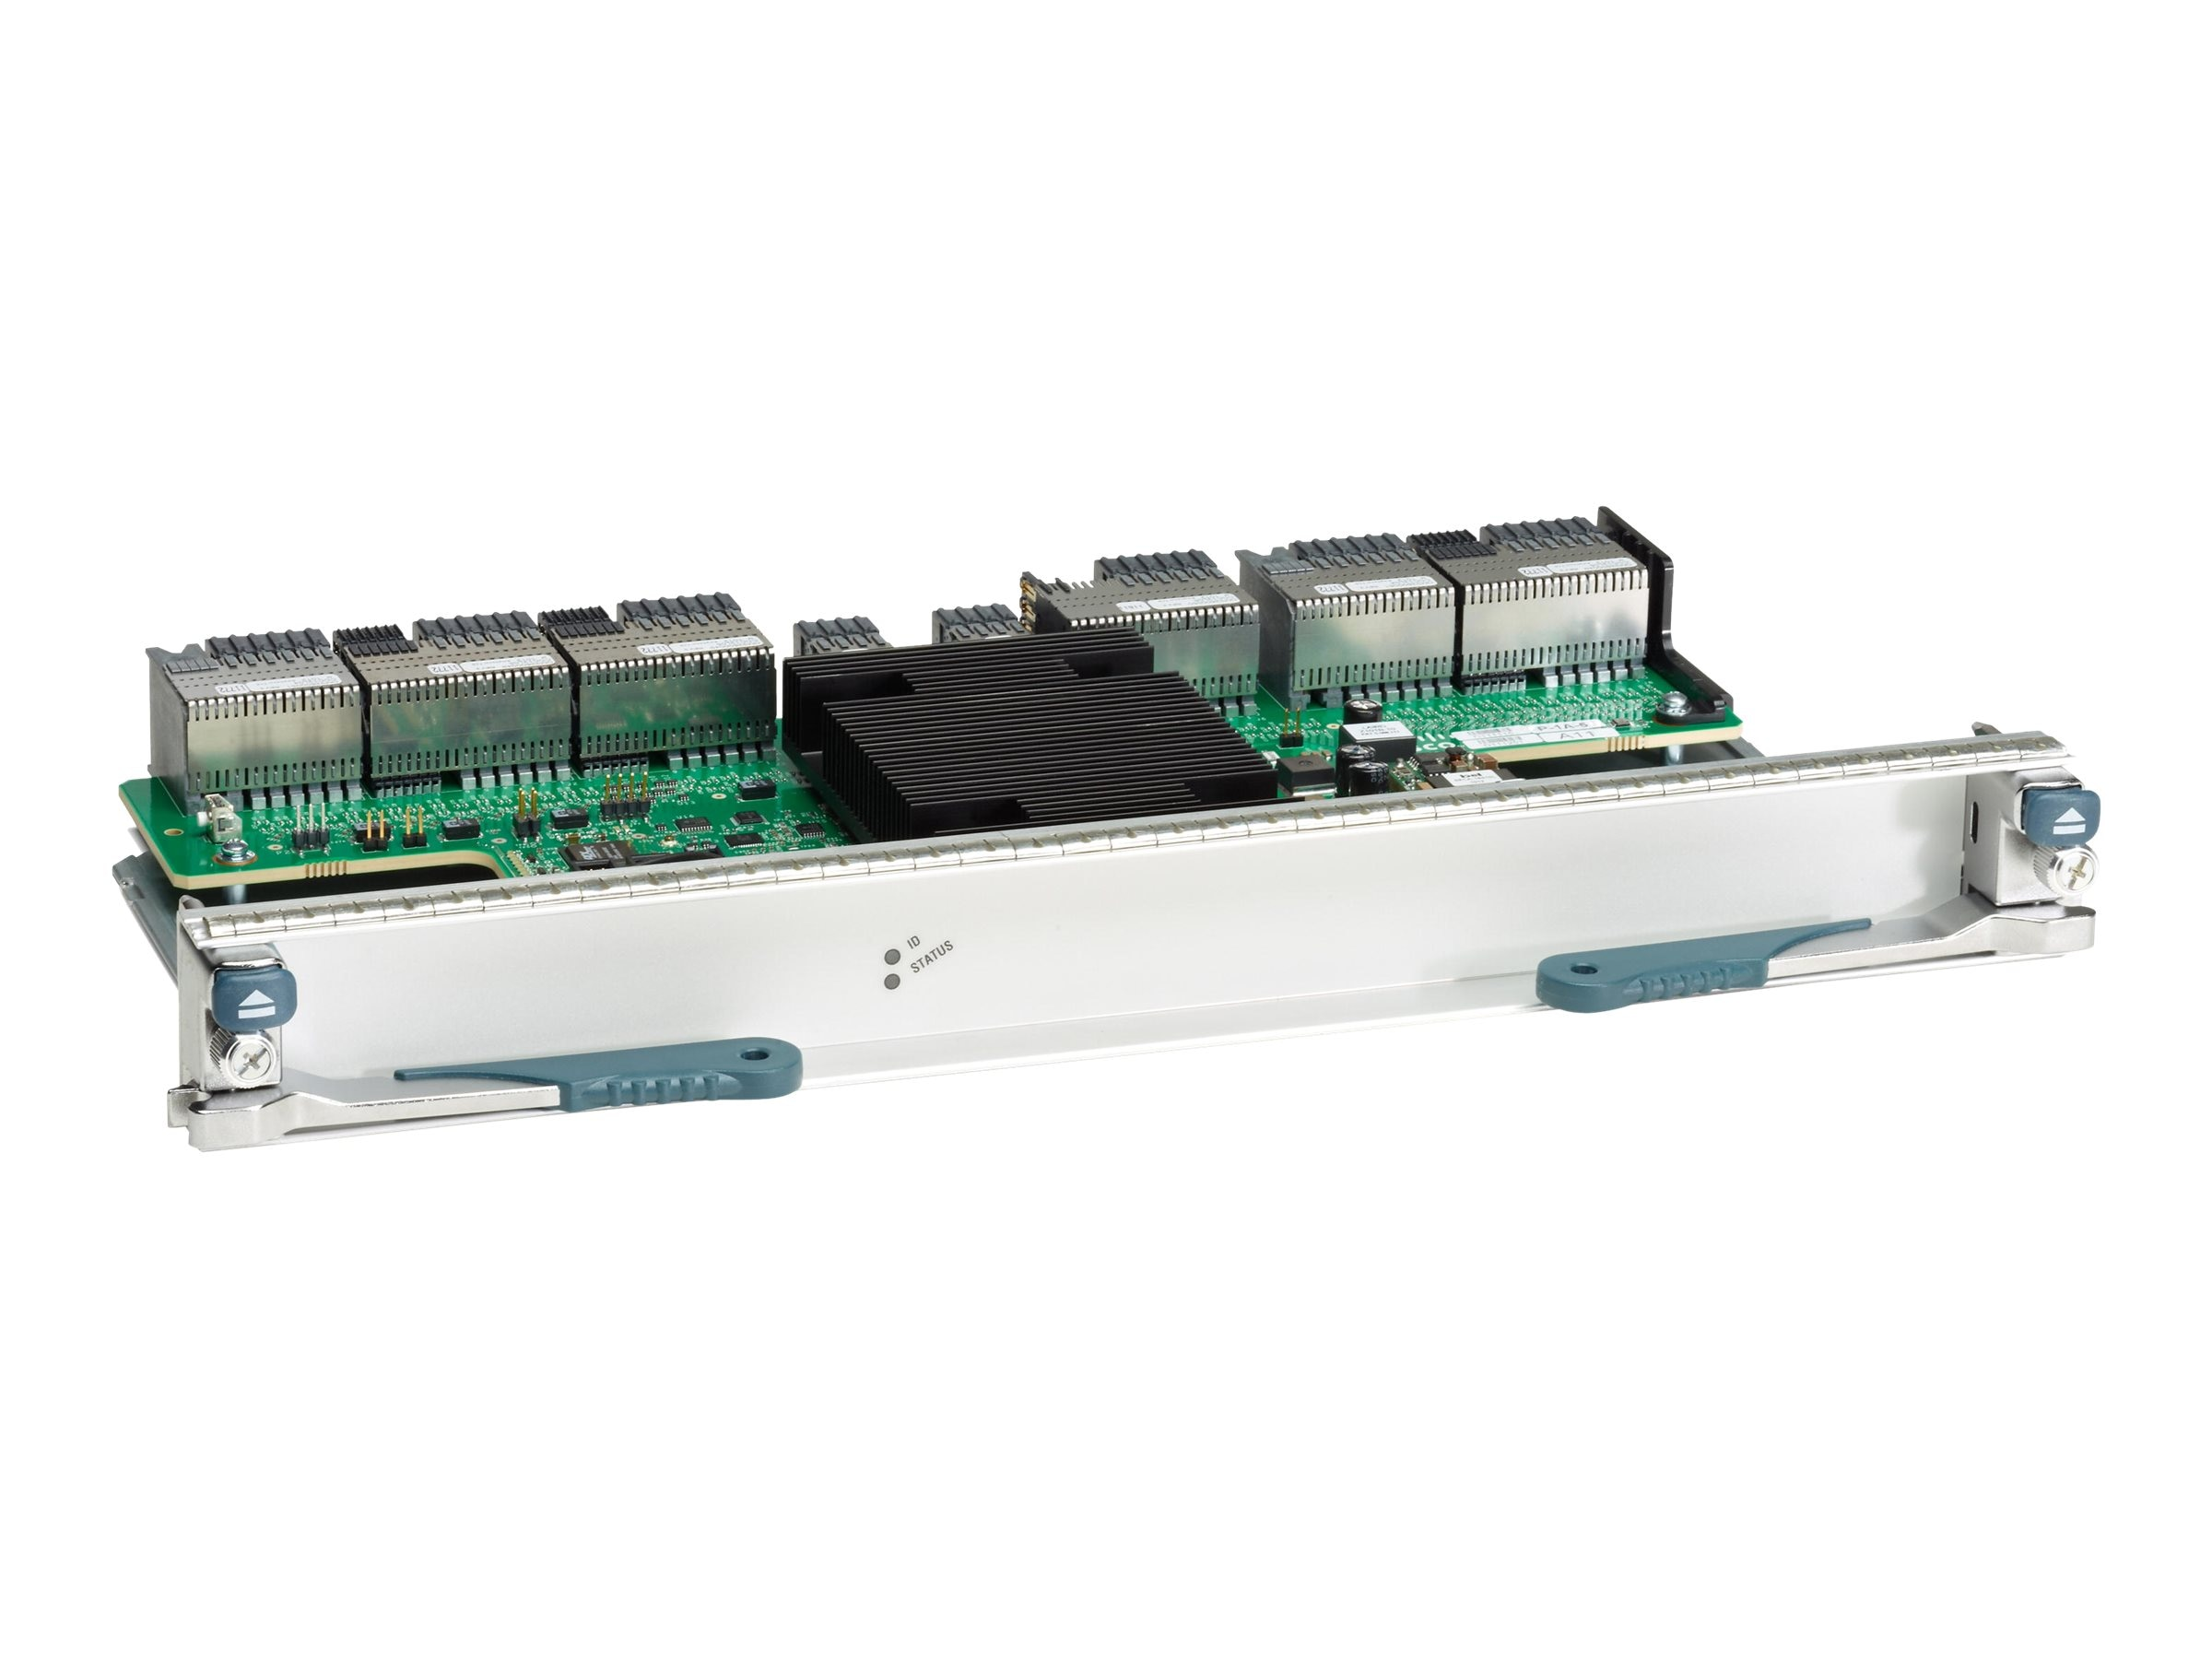 Cisco N7K-C7010-FAB-2 Image 1